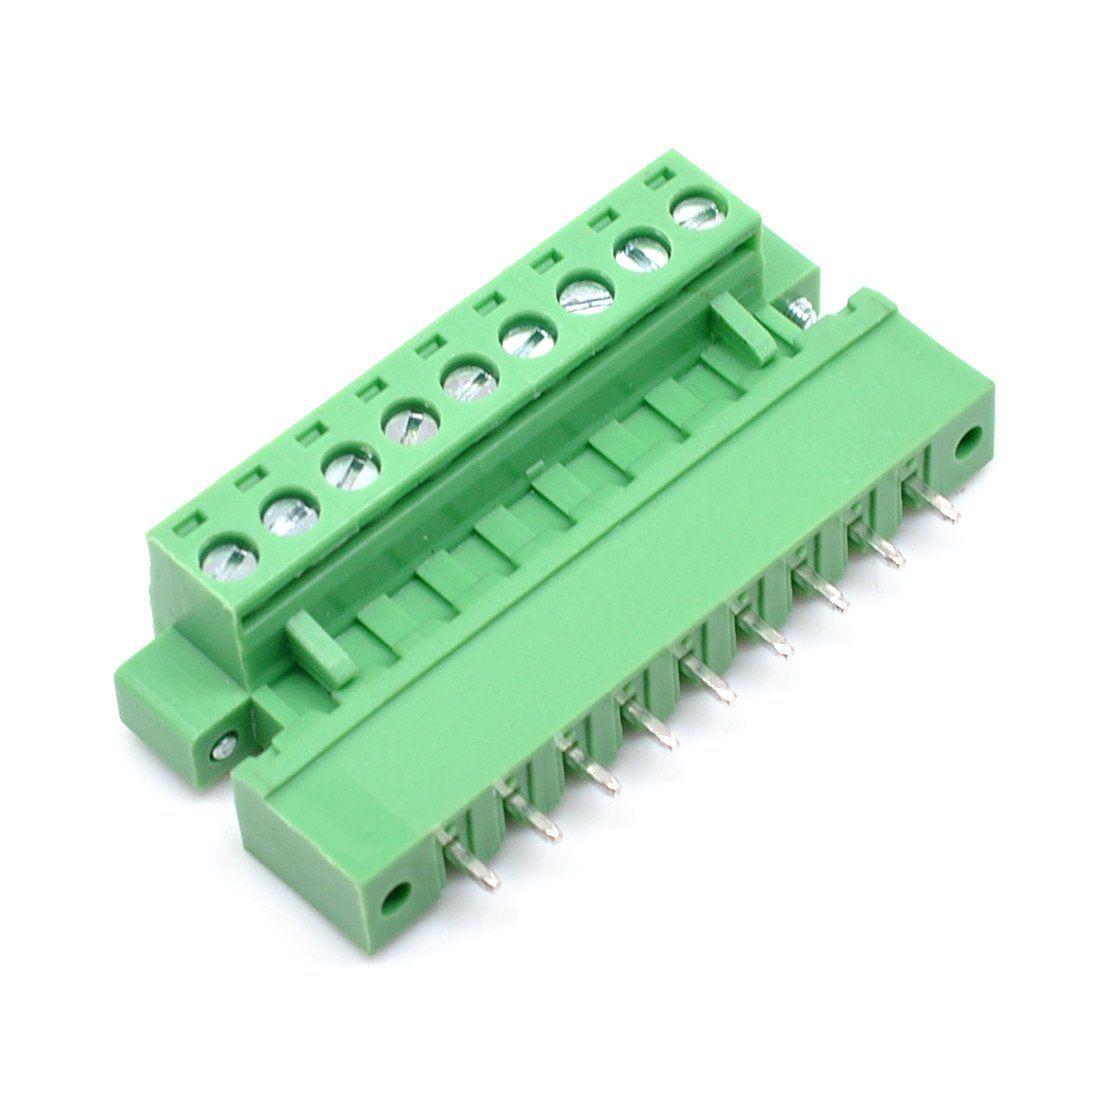 Willwin 20Pcs 5.08mm Pitch 2Pin PCB Pluggable Terminal Blocks Connectors Green